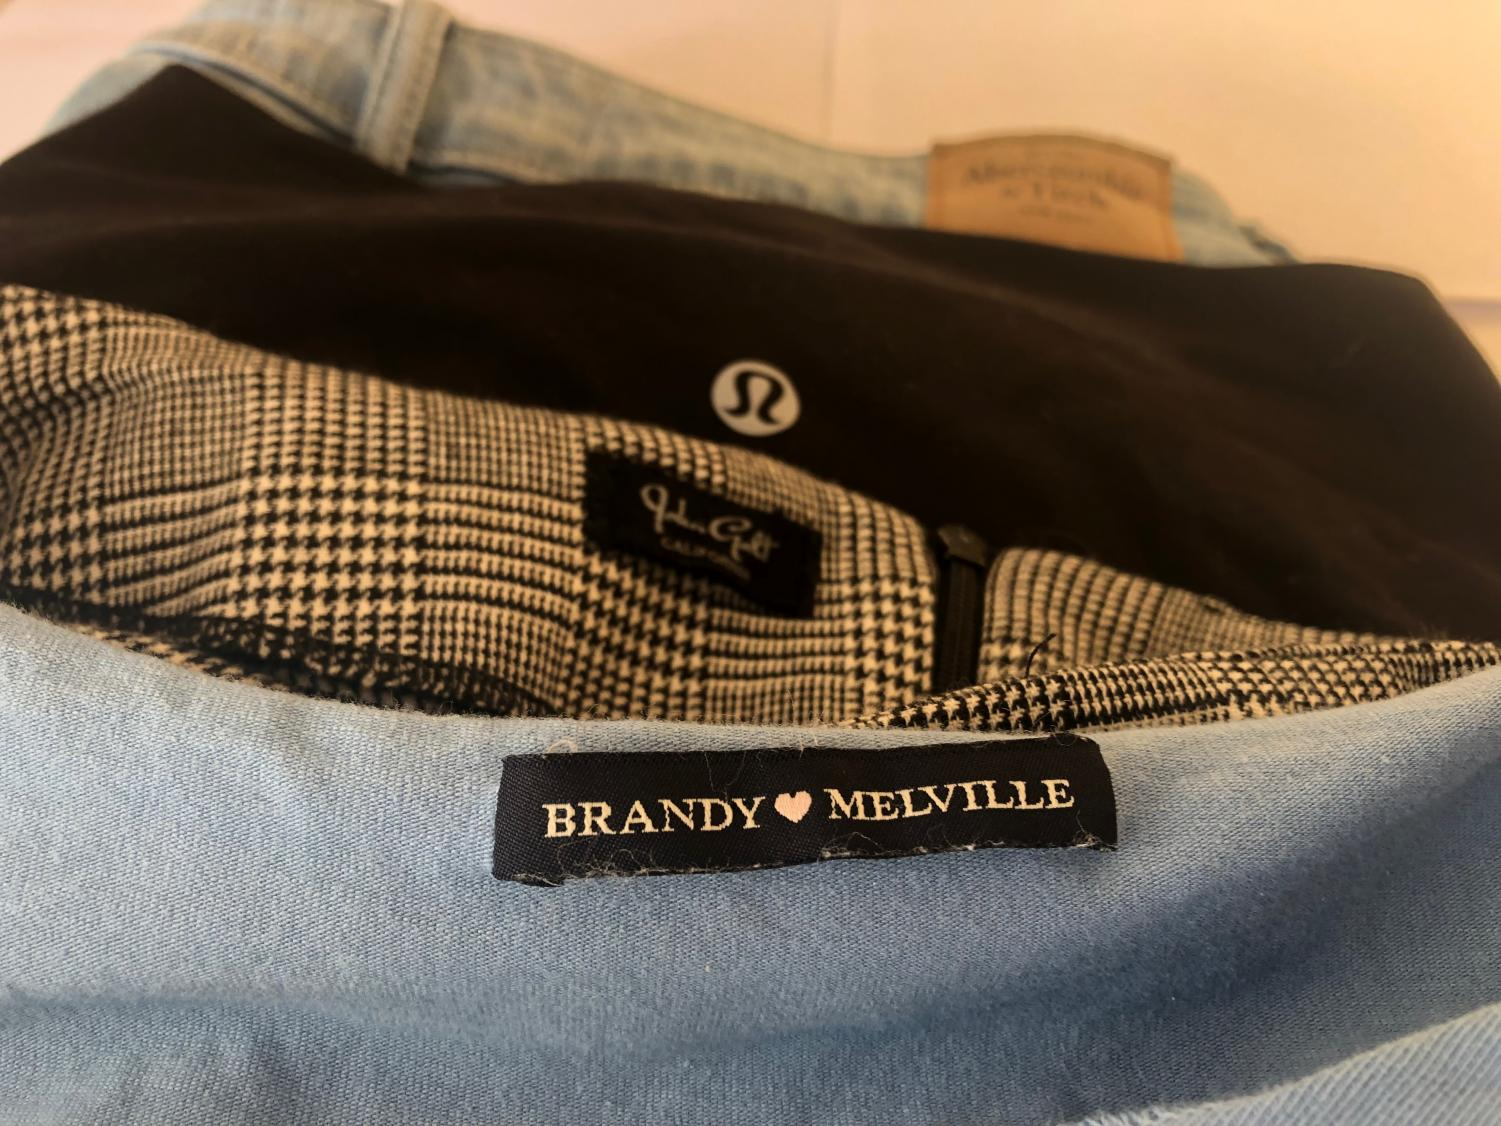 Clothing tags of popular brands that have limited or one size fits all clothing.